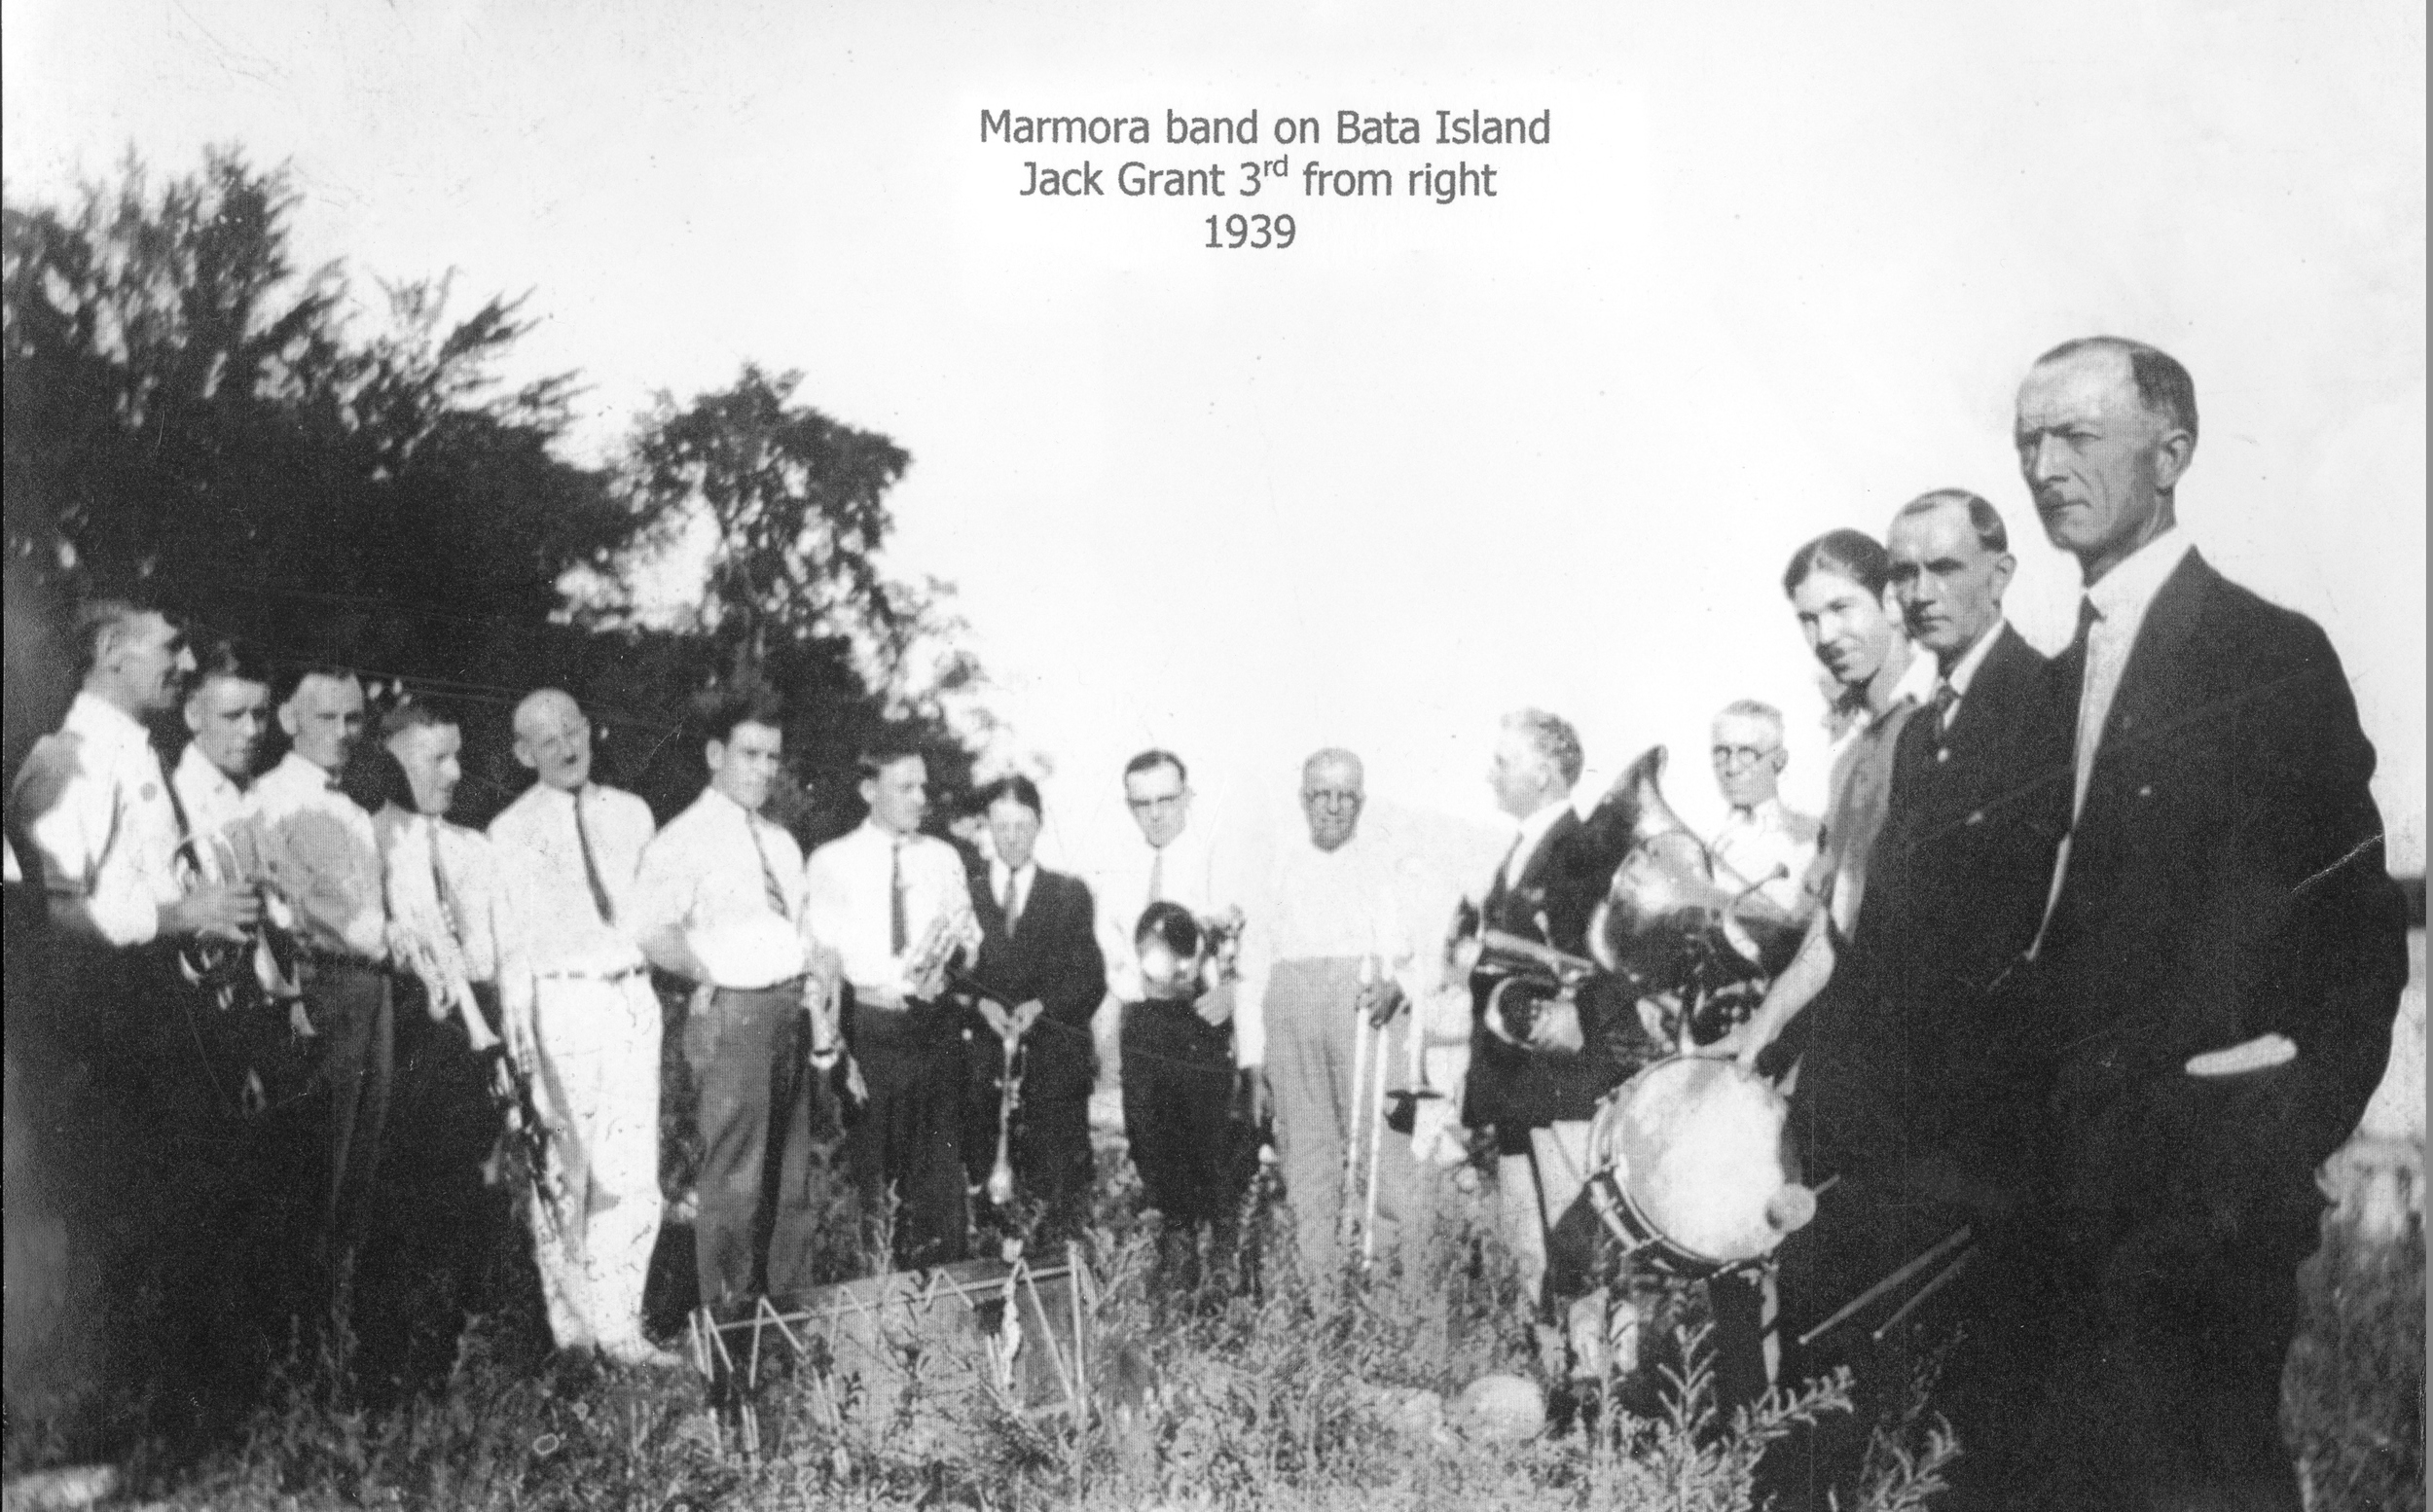 Crowe Lake,  Marmora band on Bata Island 1939,  Jack Grant 3rd from Right.jpg